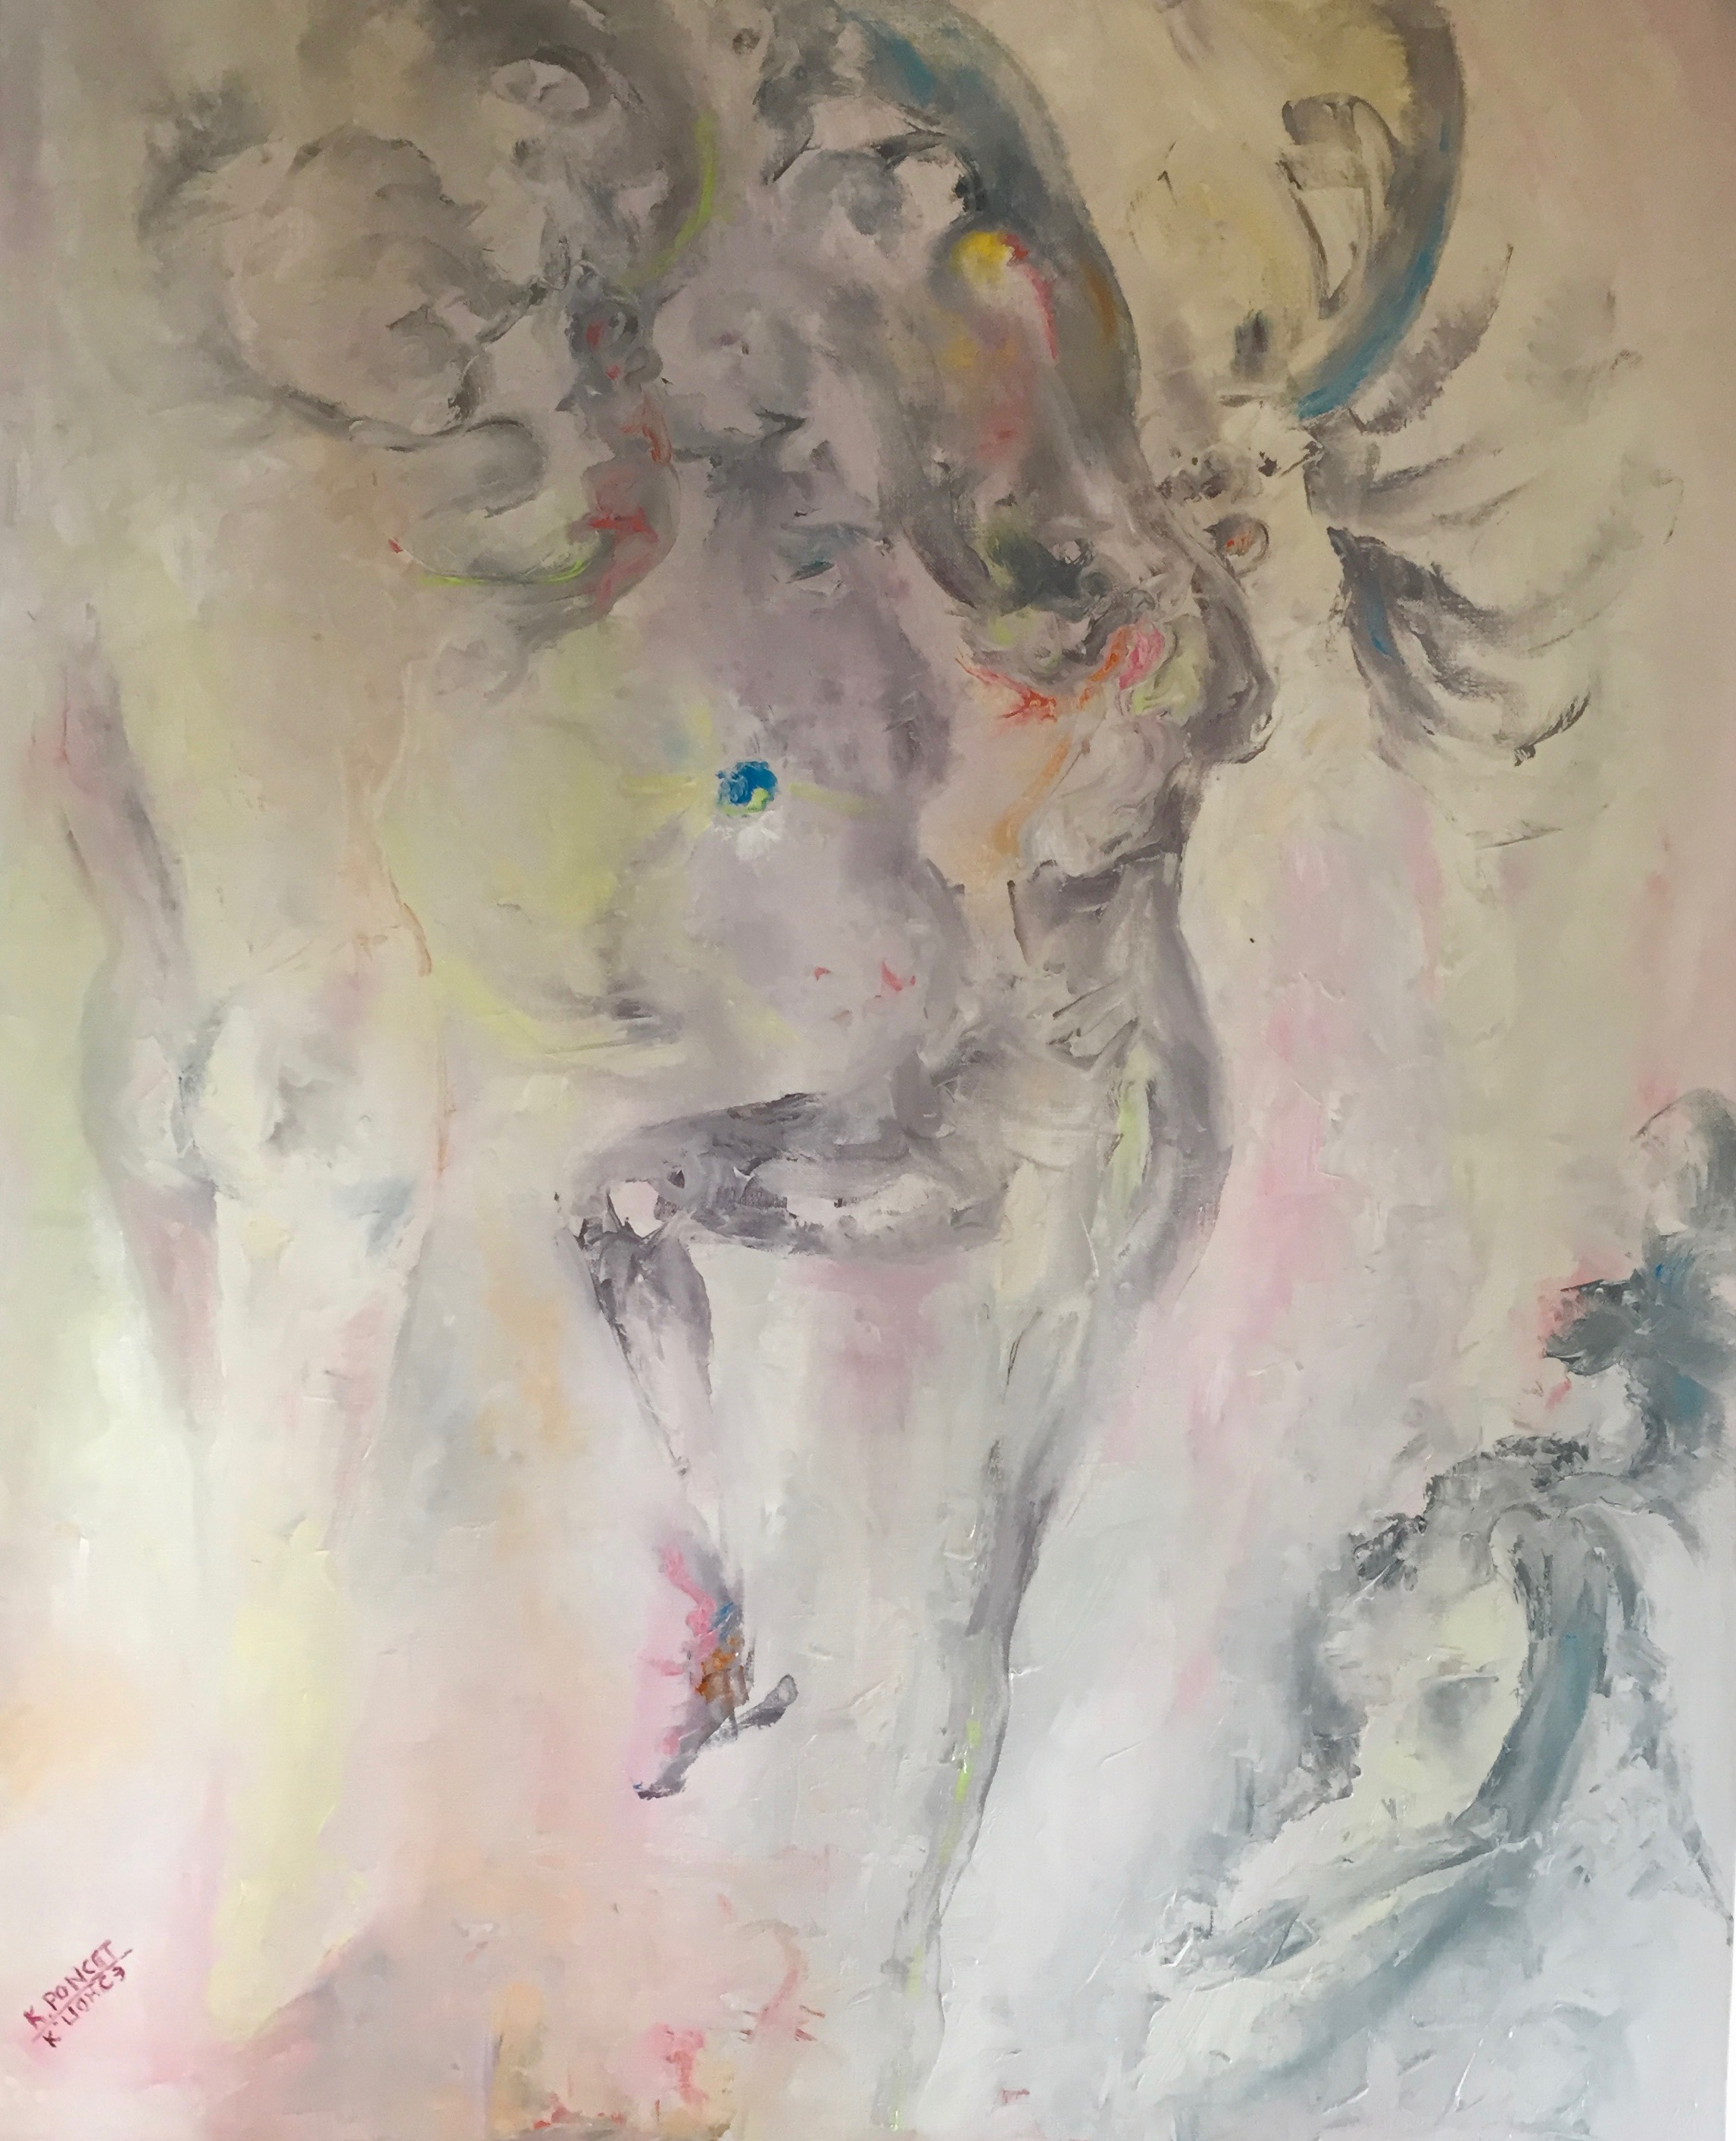 Semi-abstract oil painting representing a cloud